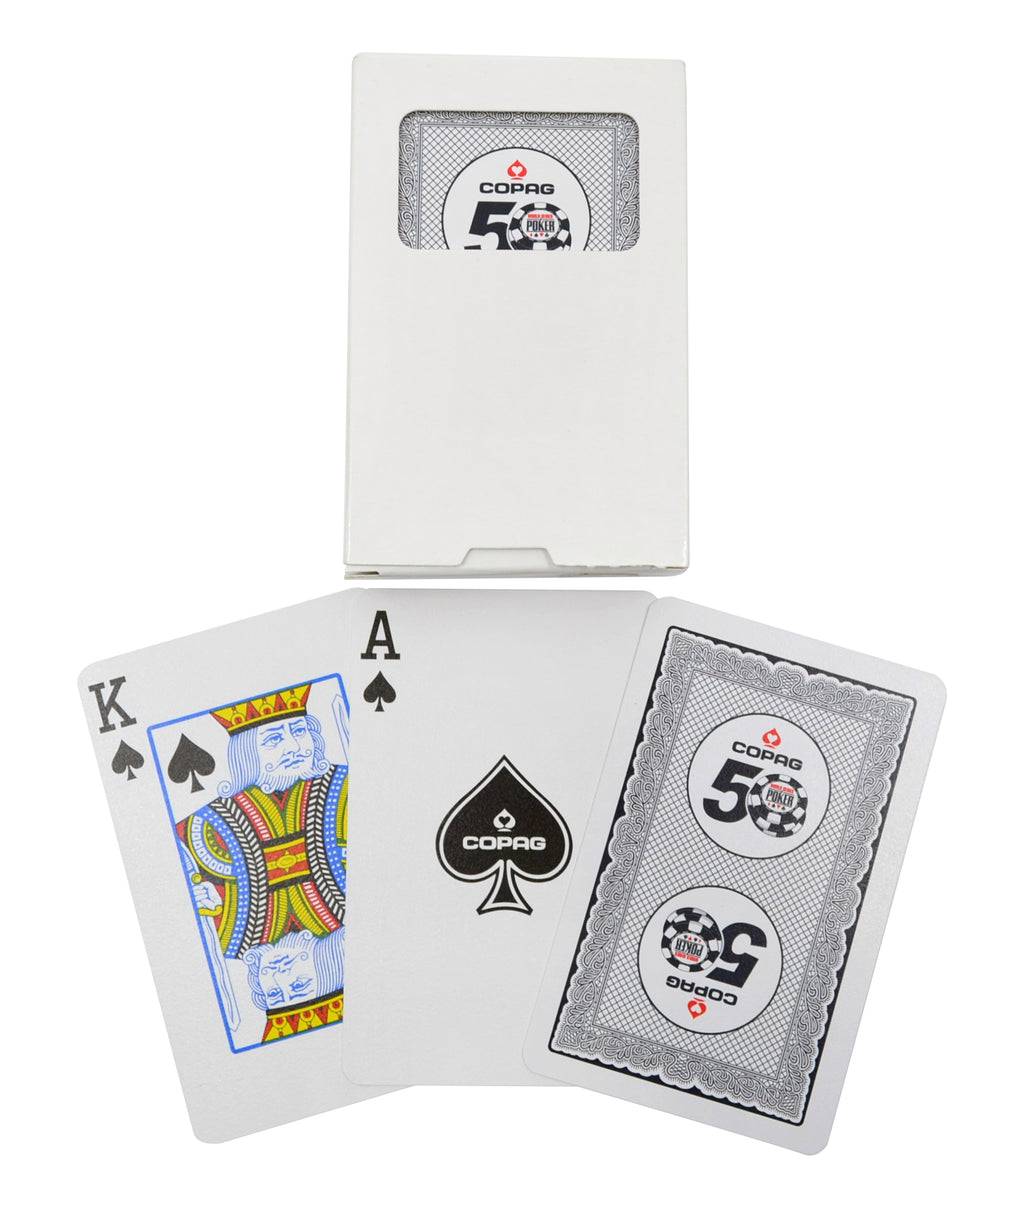 Copag 2019 WSOP Bridge Size Regular Index Playing Cards Black Single Deck